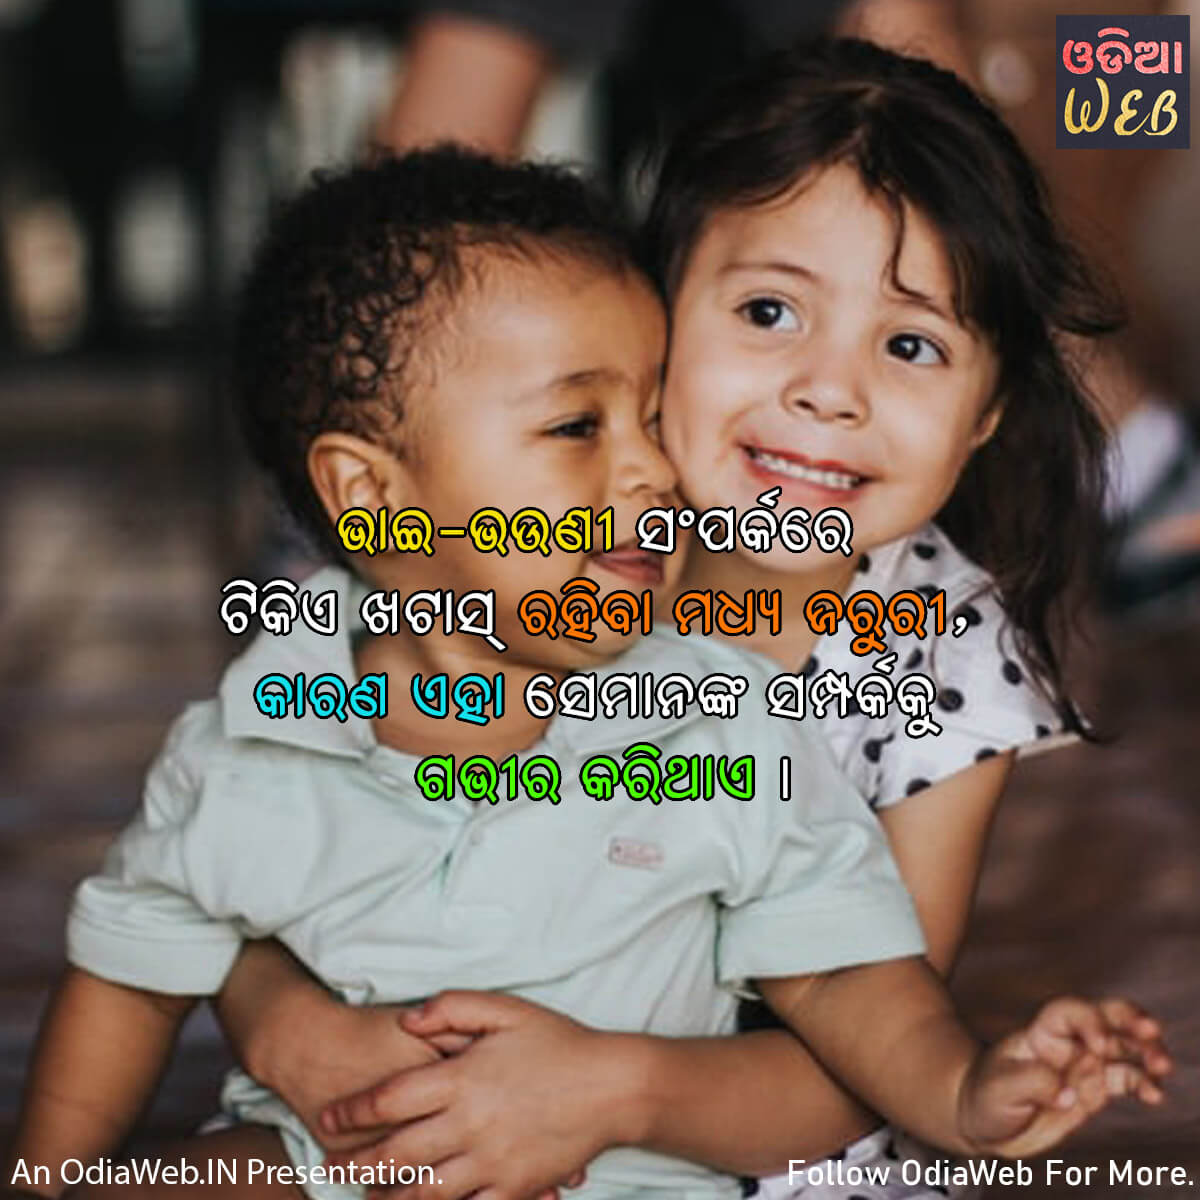 Odia Brother & Sister Quotes3